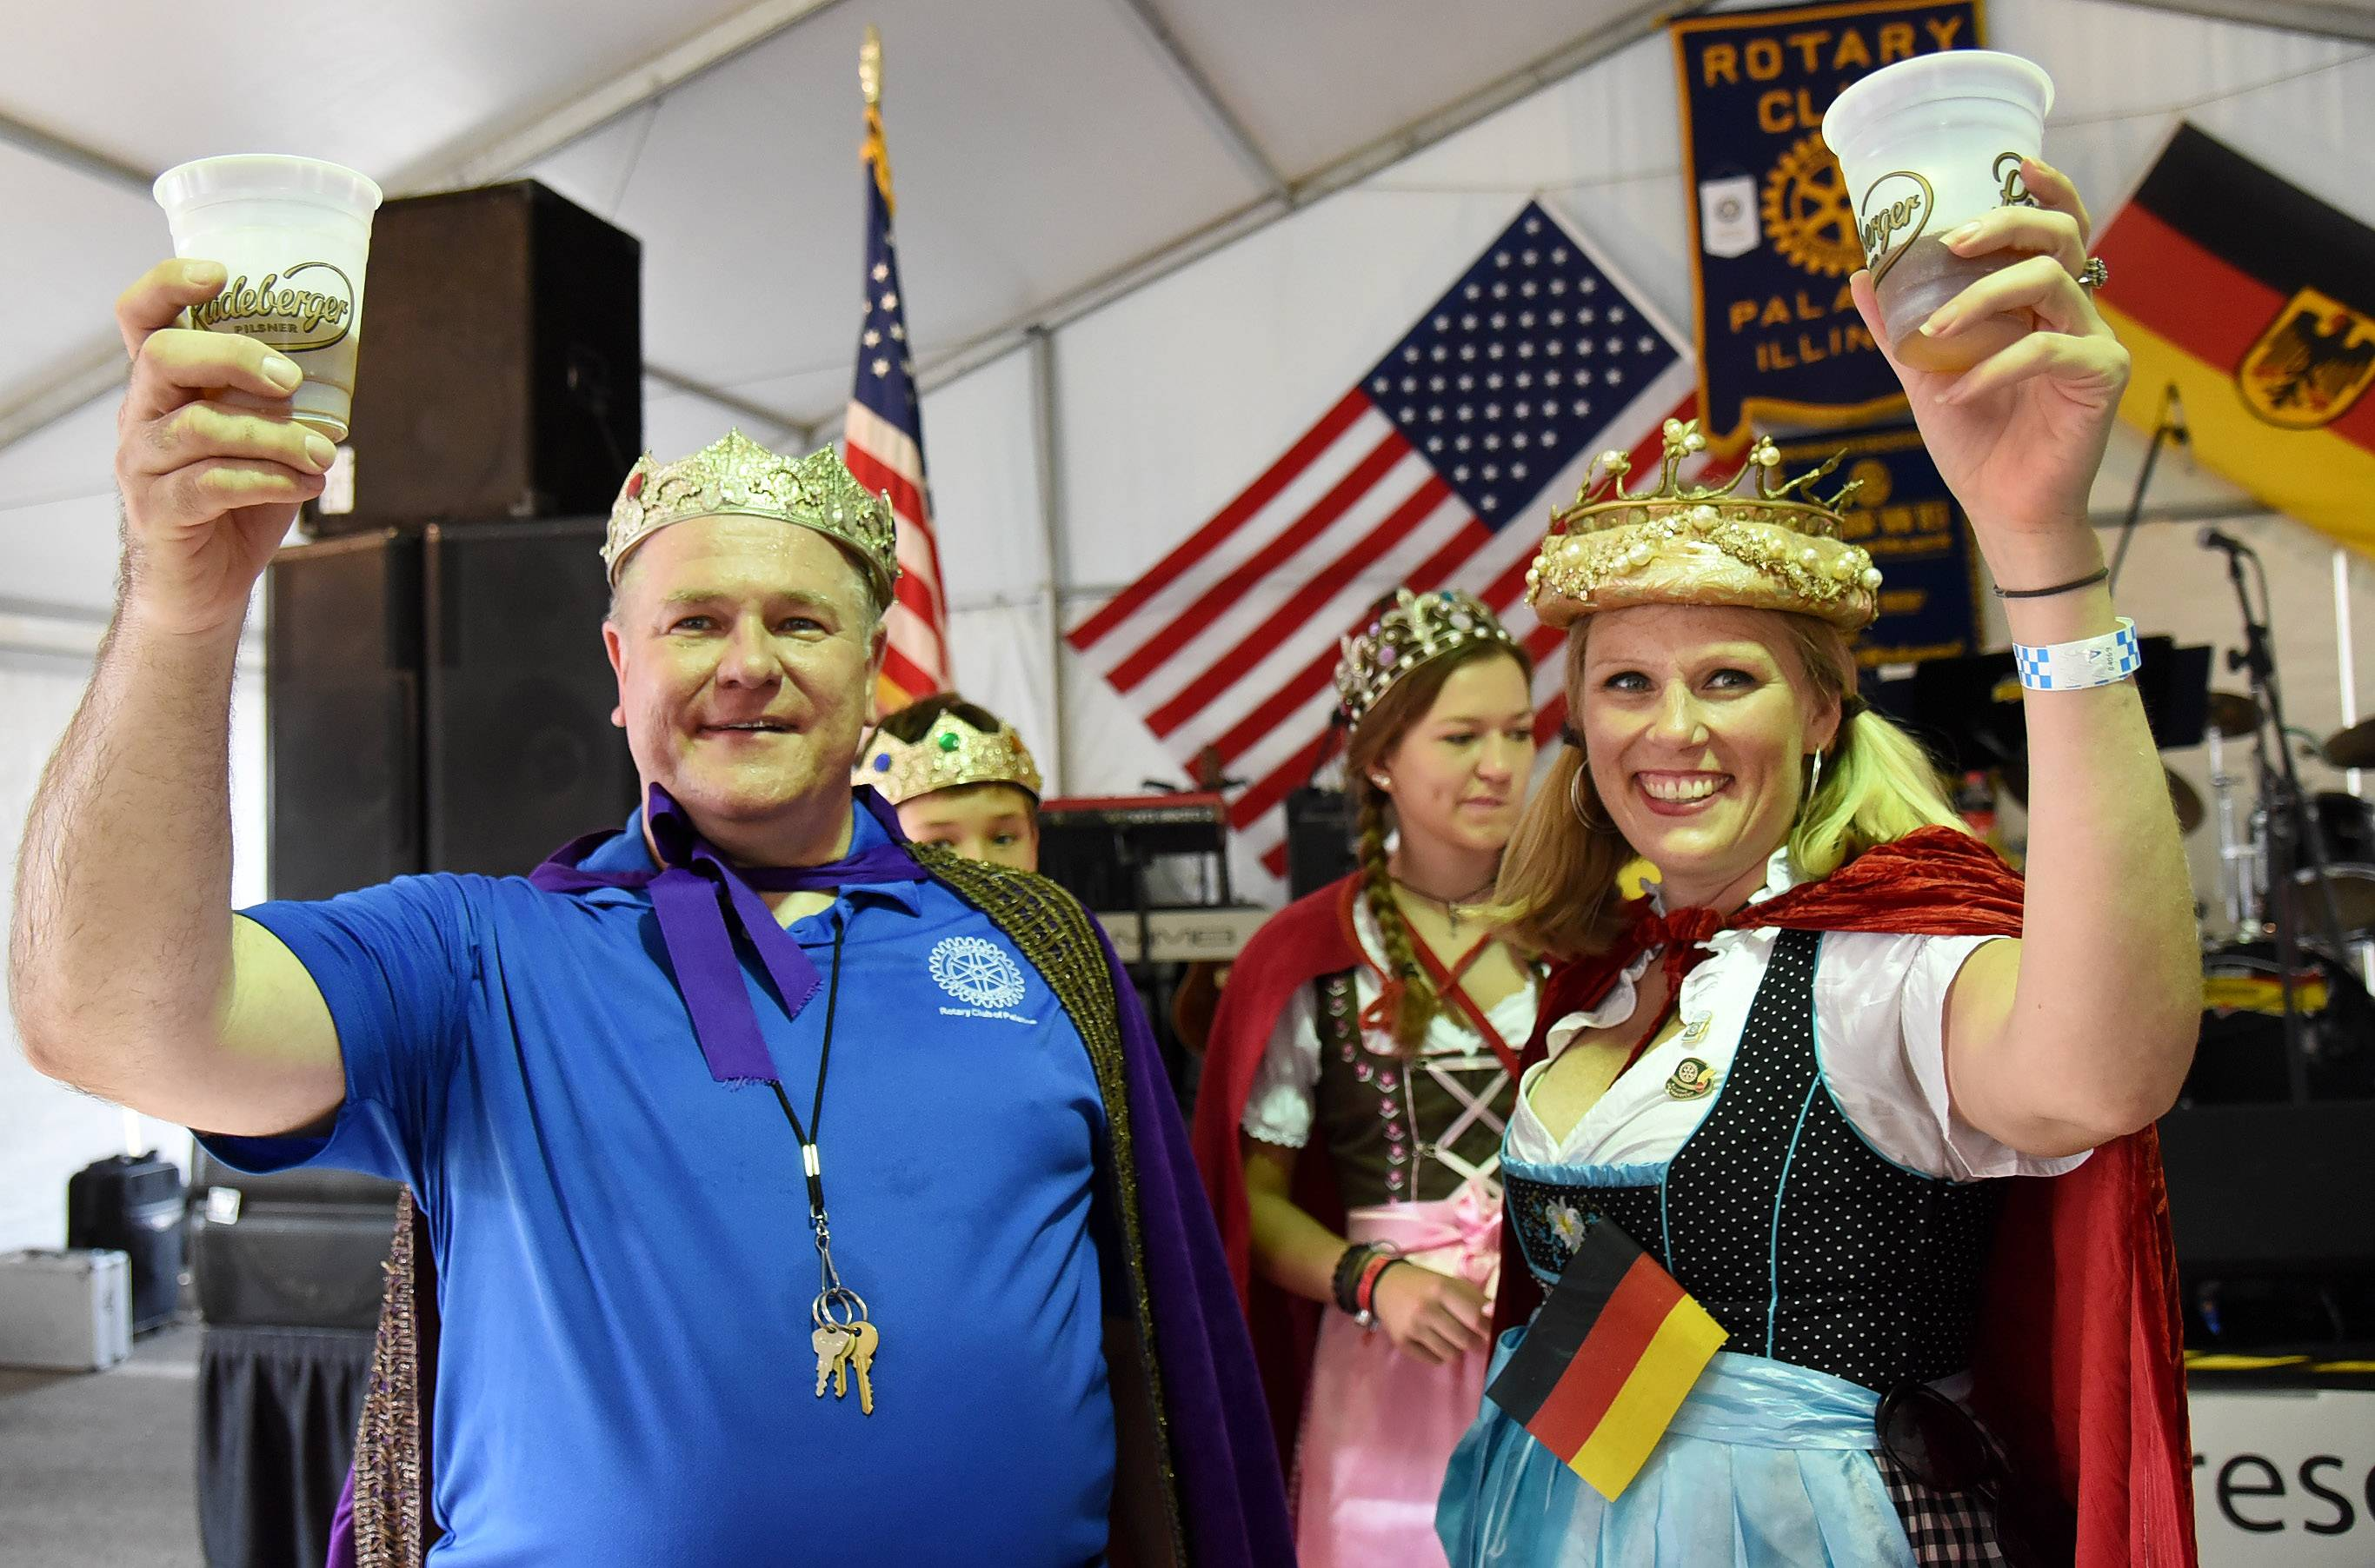 Oktoberfest king and queen Hank Sobotka, president of the Rotary, and Jaime Suszek, Rotary youth exchange officer, raise their cups in a toast to kick off the three-day Rotary of Palatine Oktoberfest celebration last year.